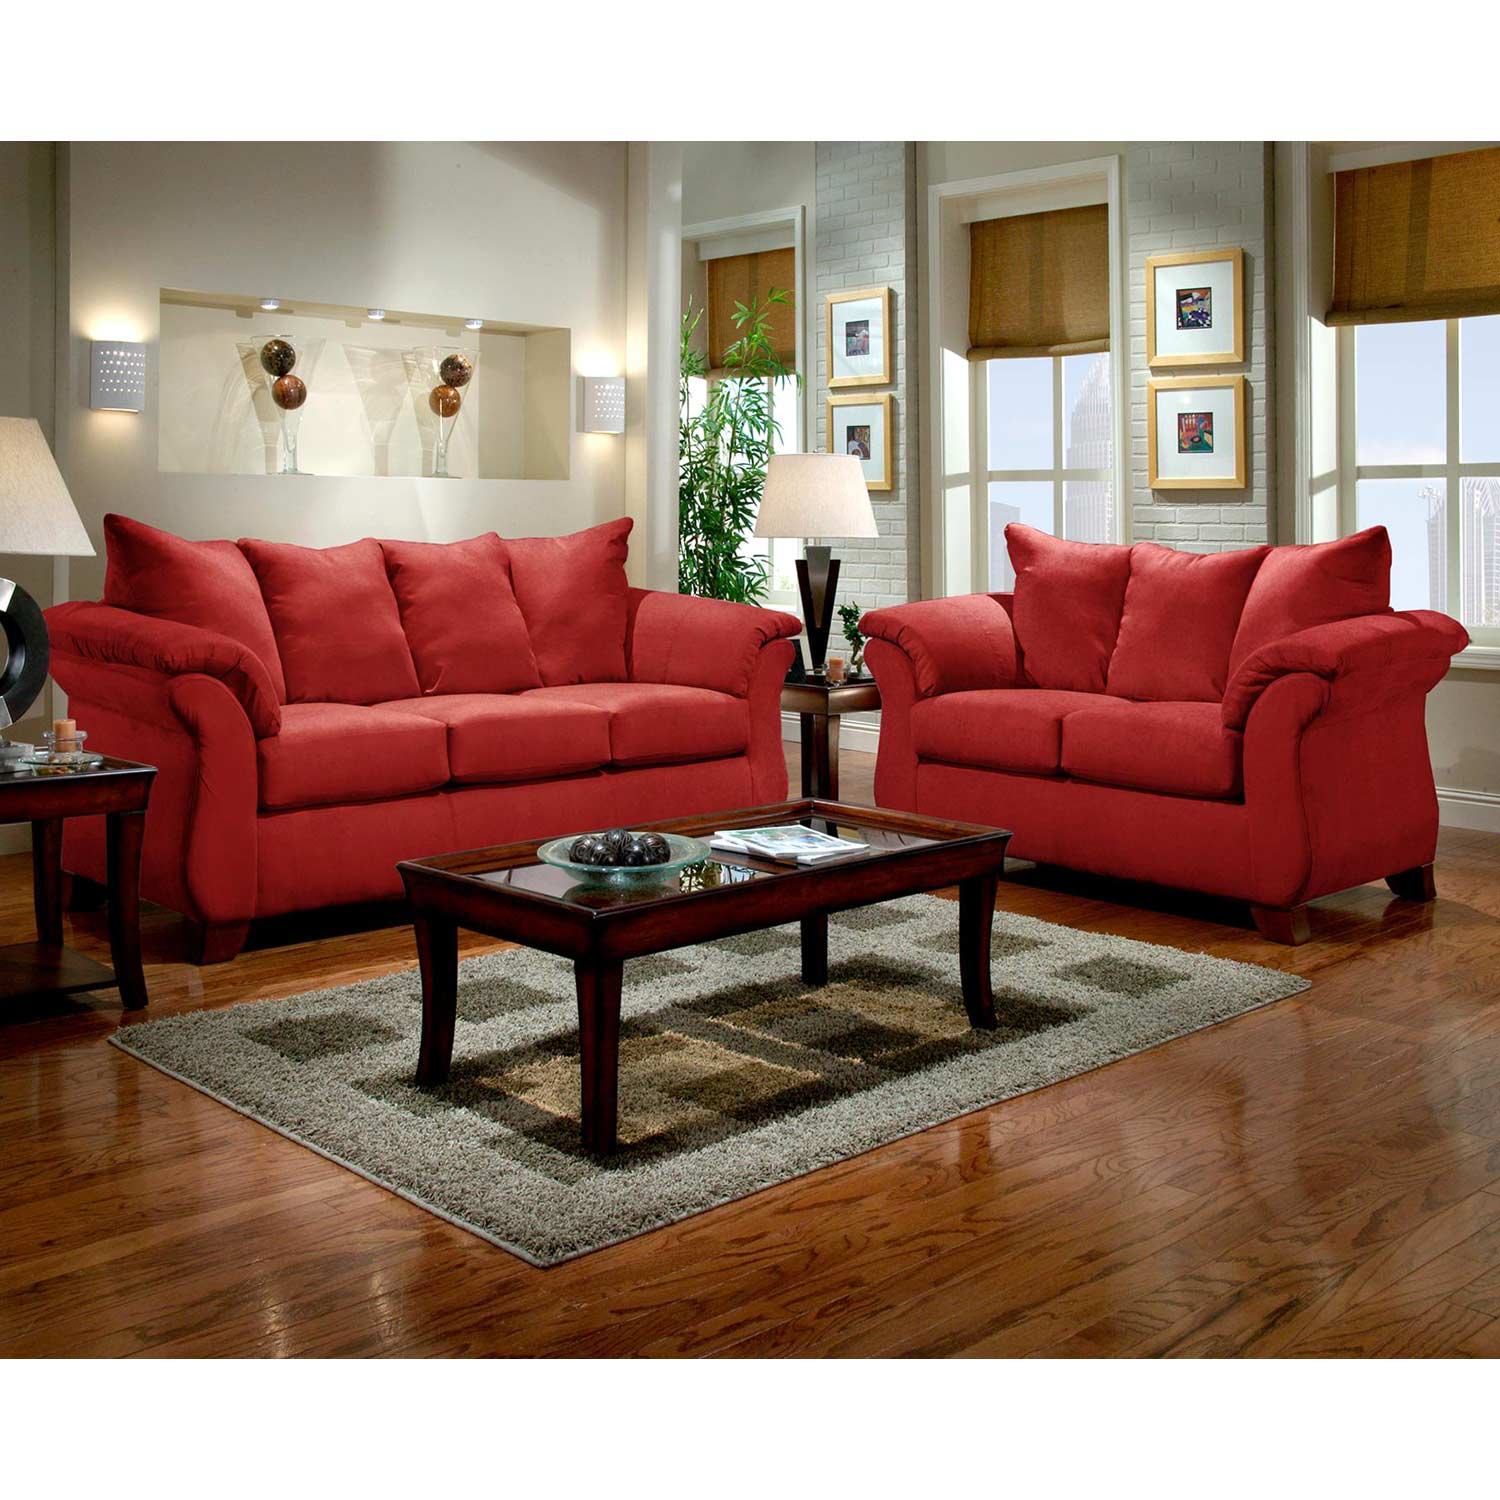 Payton Pillow Back Loveseat Red Brick Microfiber Dcg